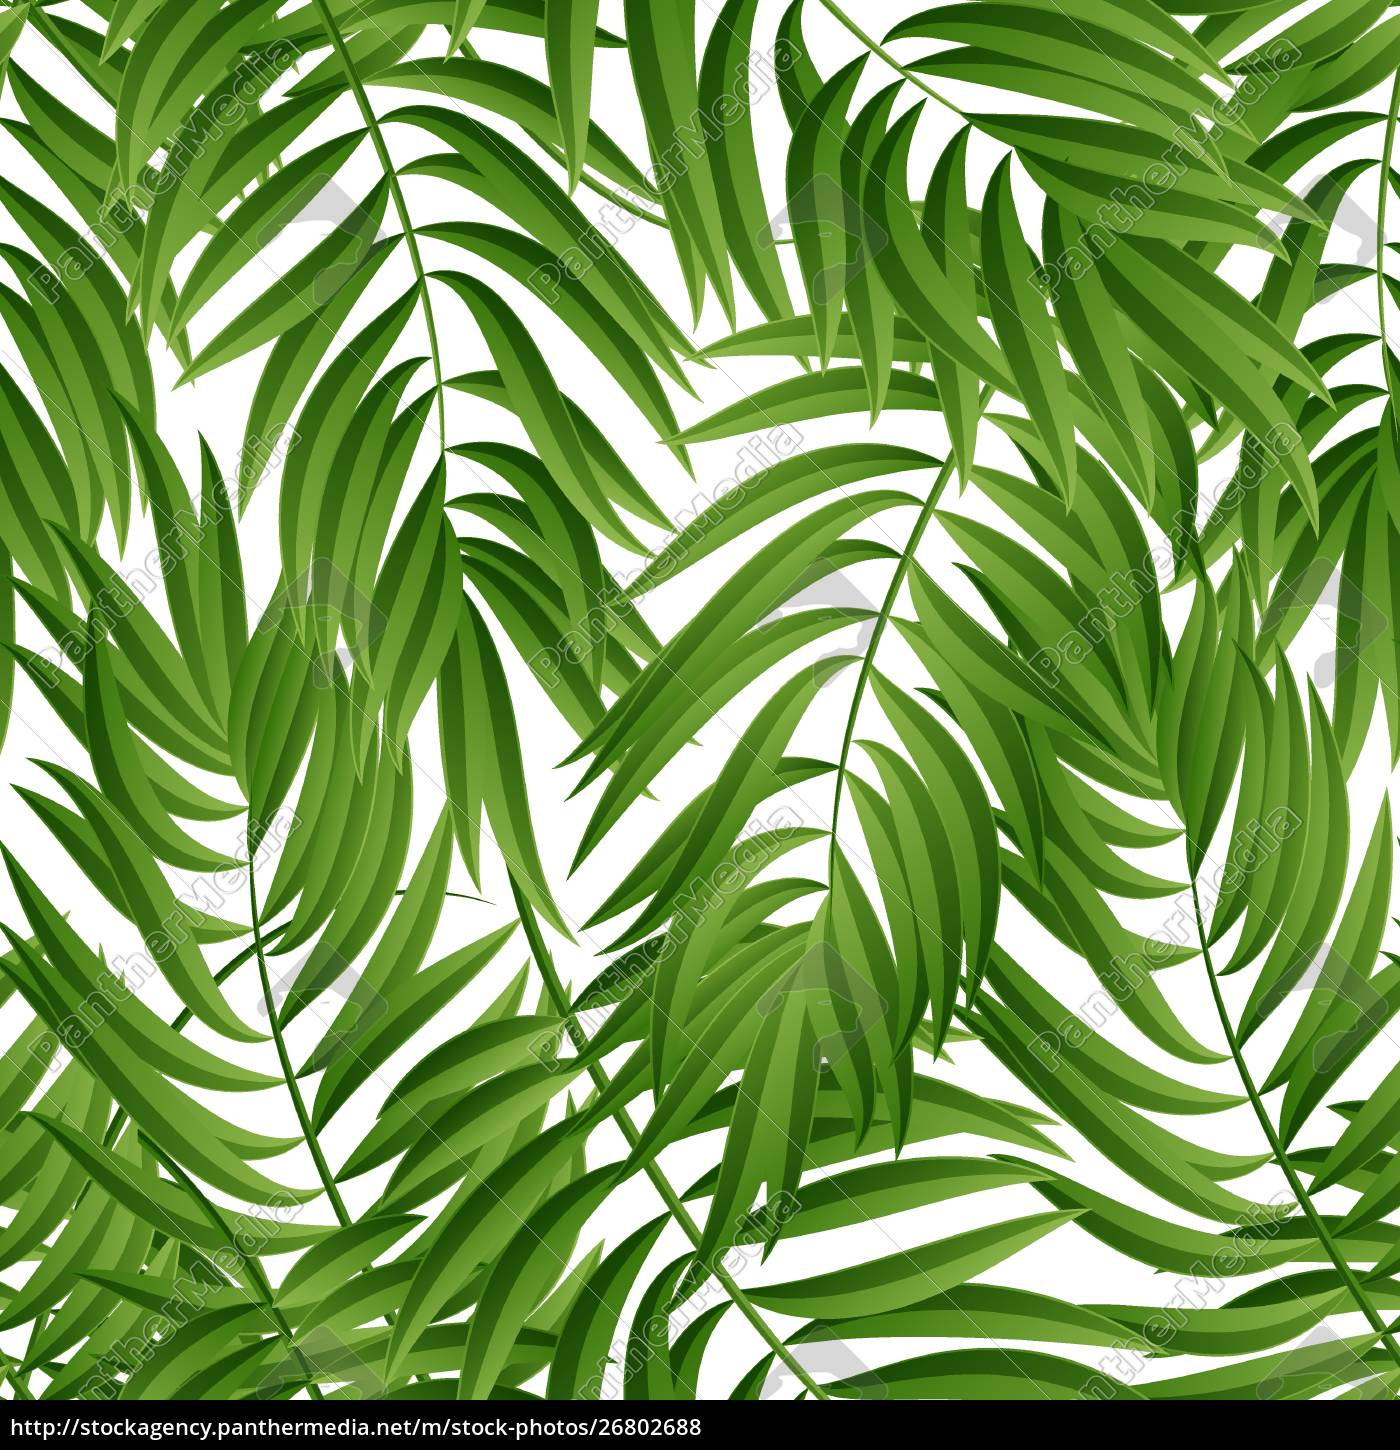 Tropical Palm Leaves Vector Seamless Tropical Palm Royalty Free Photo 26802688 Panthermedia Stock Agency Pikbest has 3796 tropical leaves design images templates for free. royalty free vector 26802688 tropical palm leaves vector